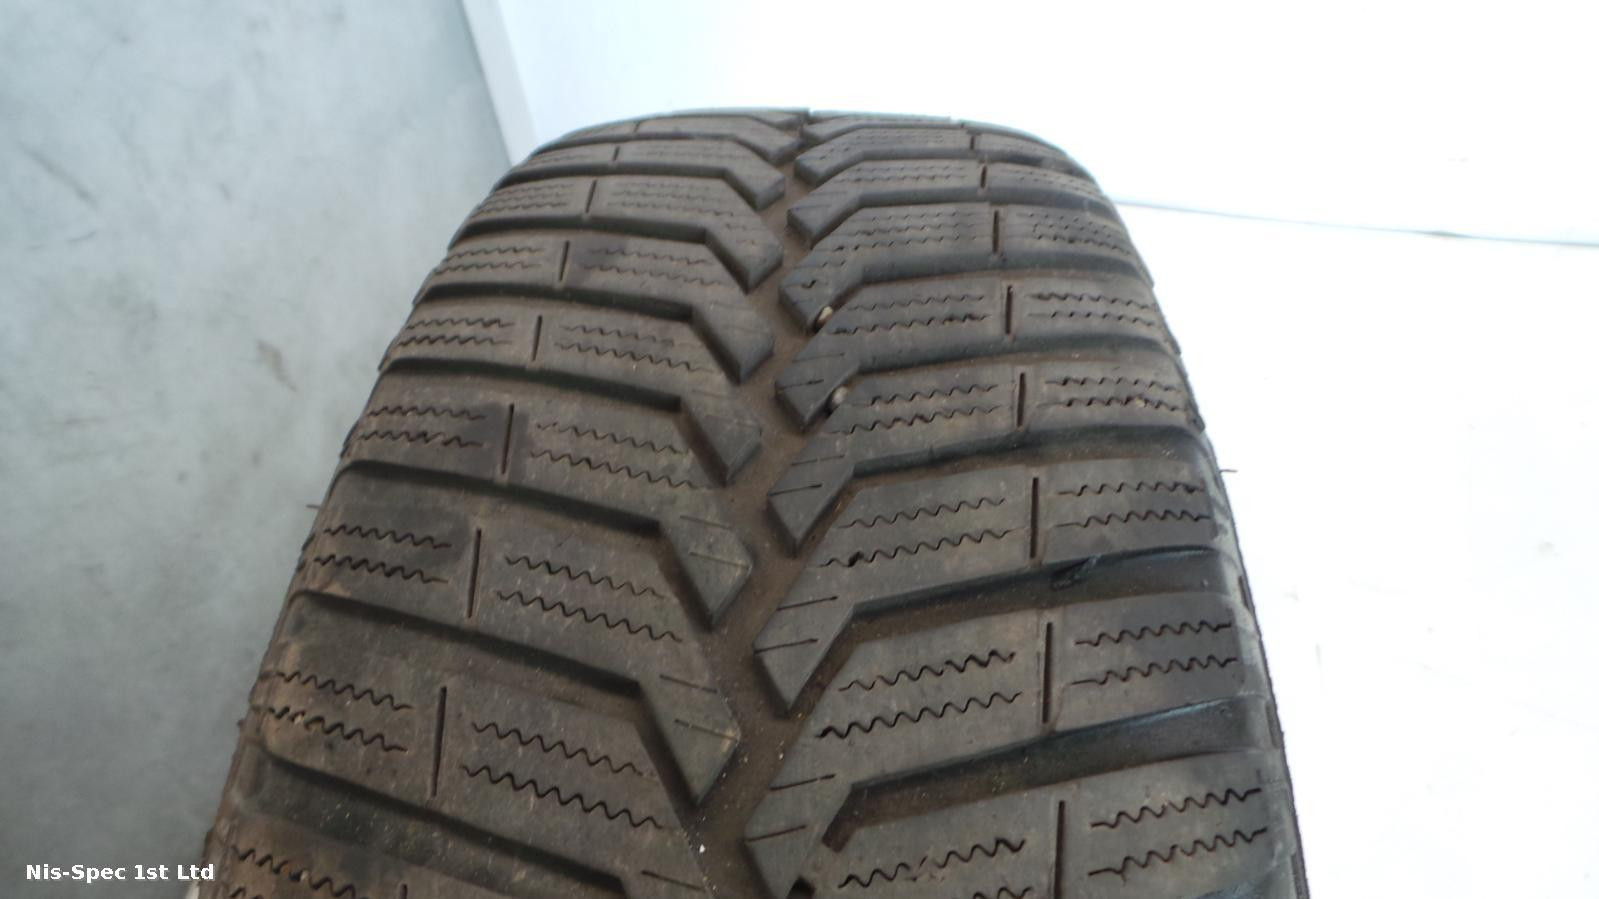 NISSAN NV200 STEEL WHEEL AND TYRE 175-70-14 WITH 6mm TREAD